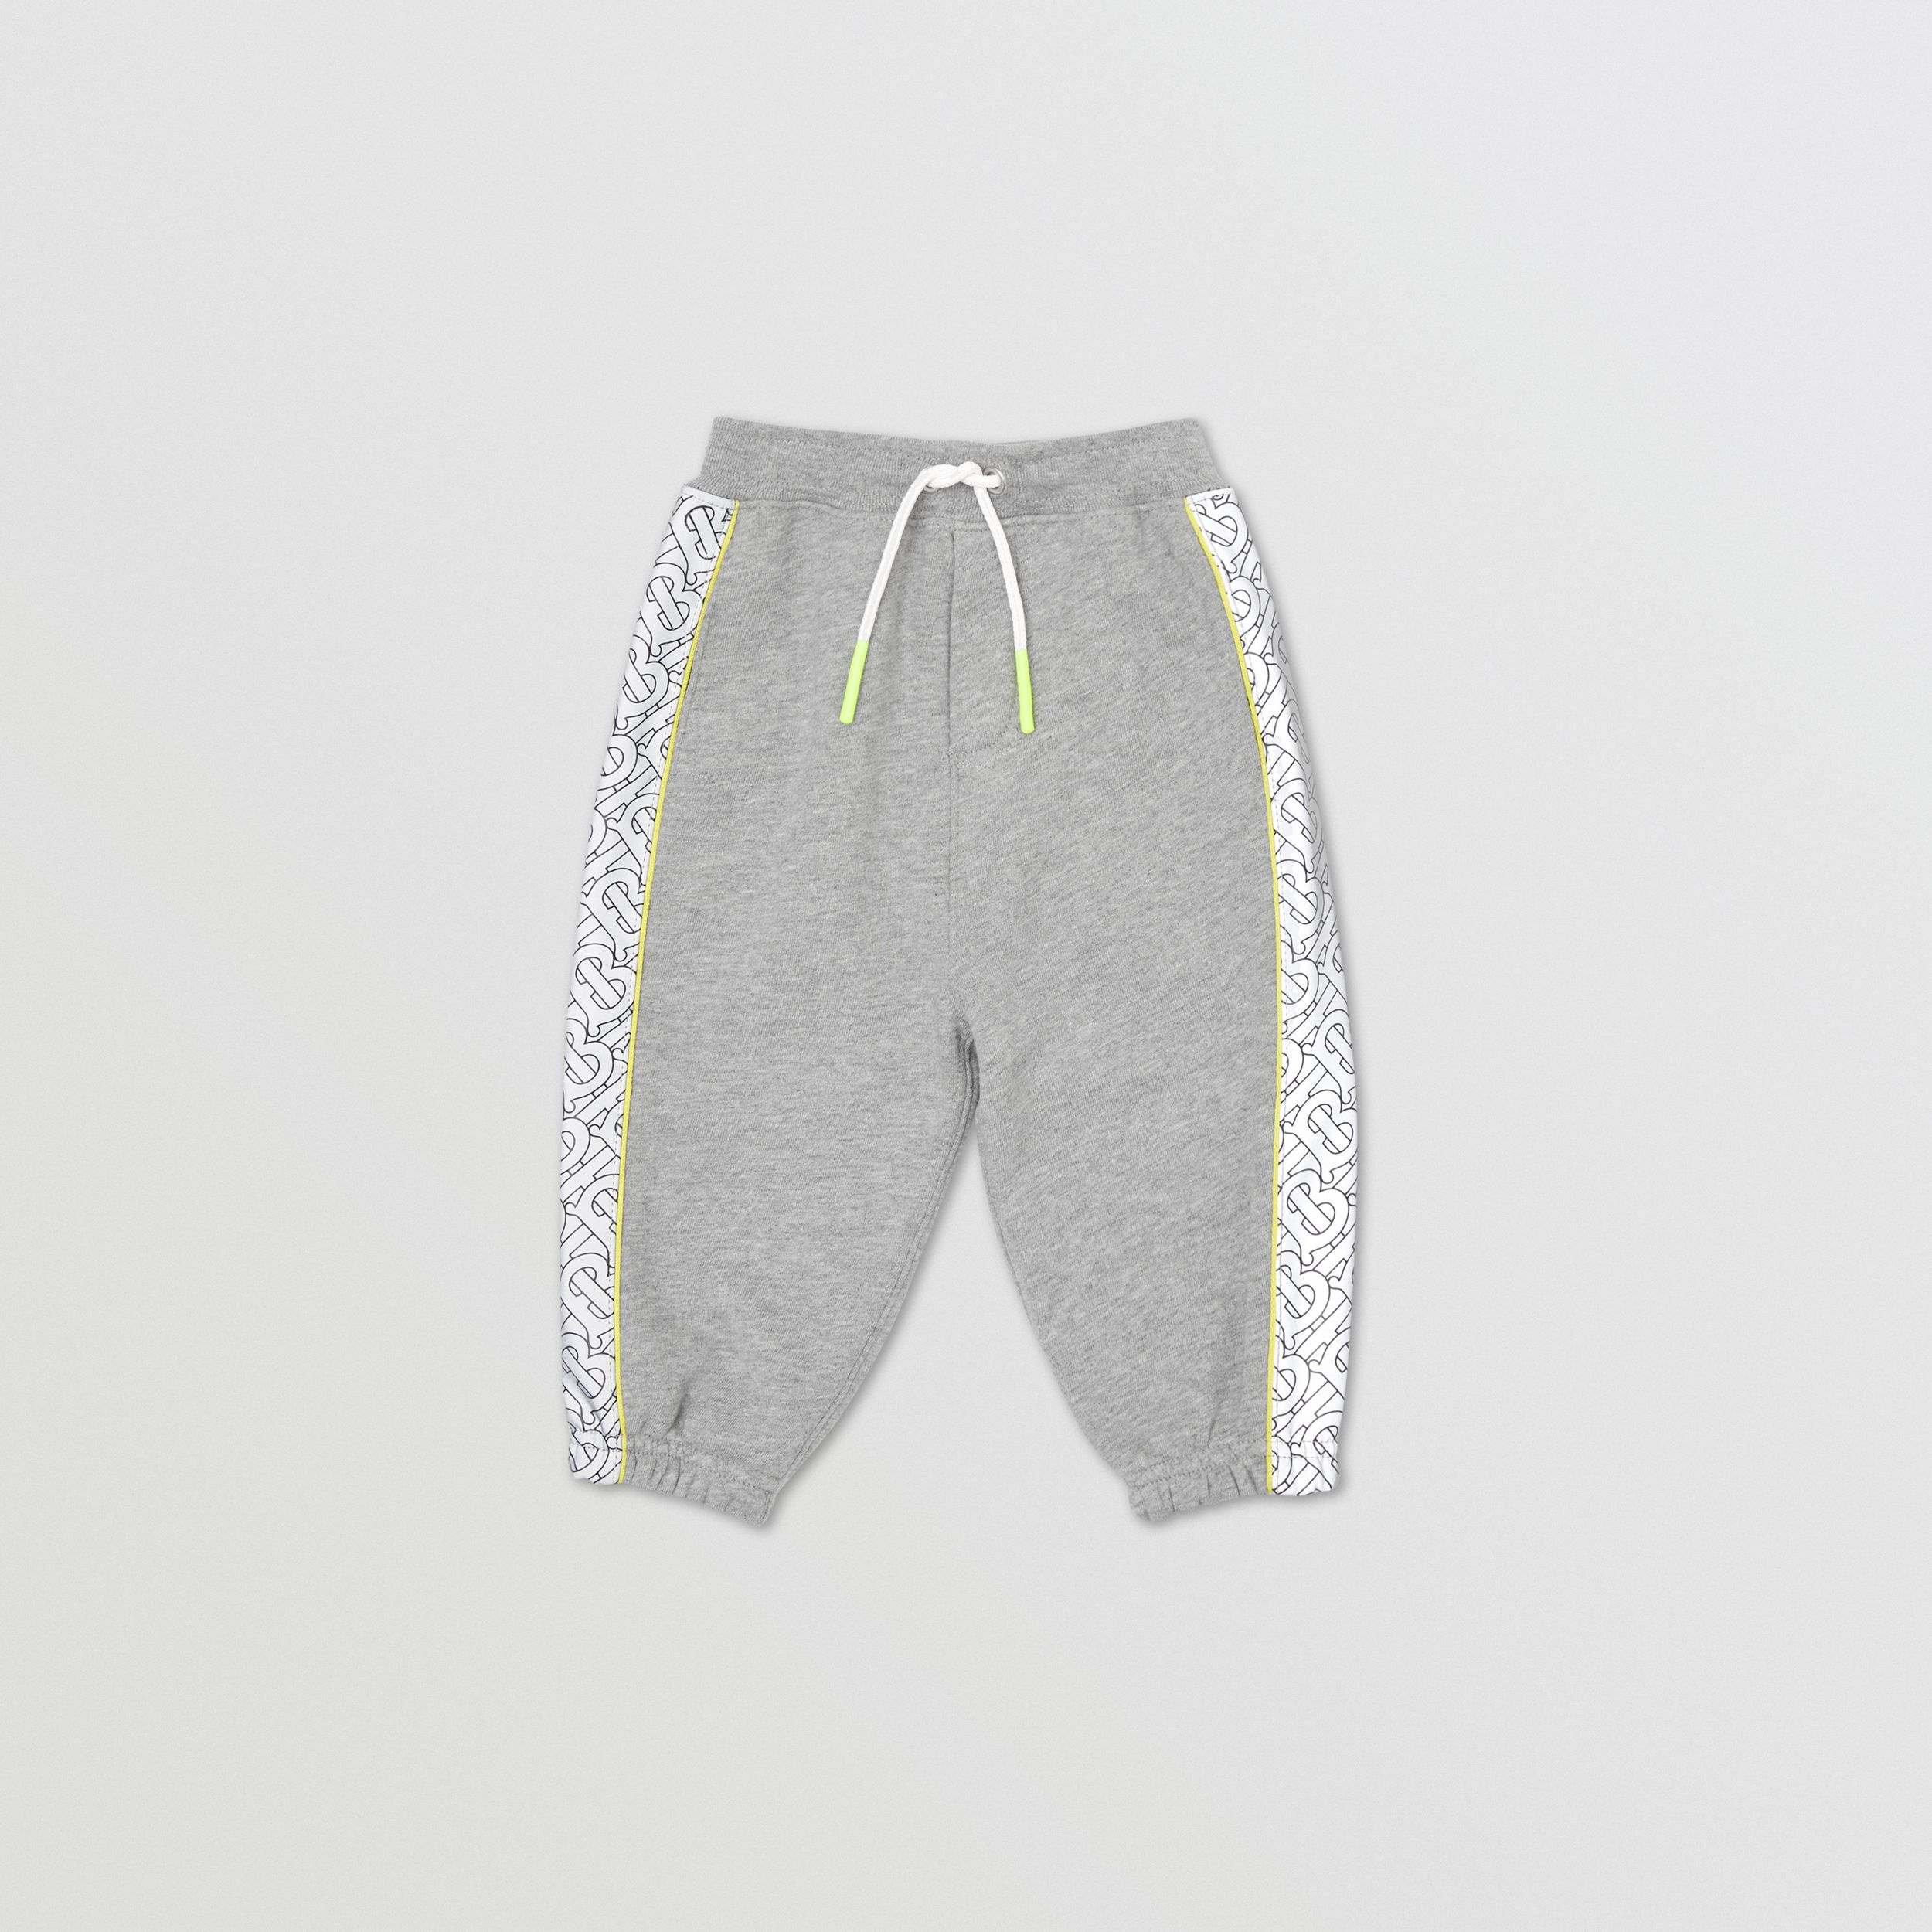 Monogram Print Panel Cotton Jogging Pants in Grey Melange - Children | Burberry - 1